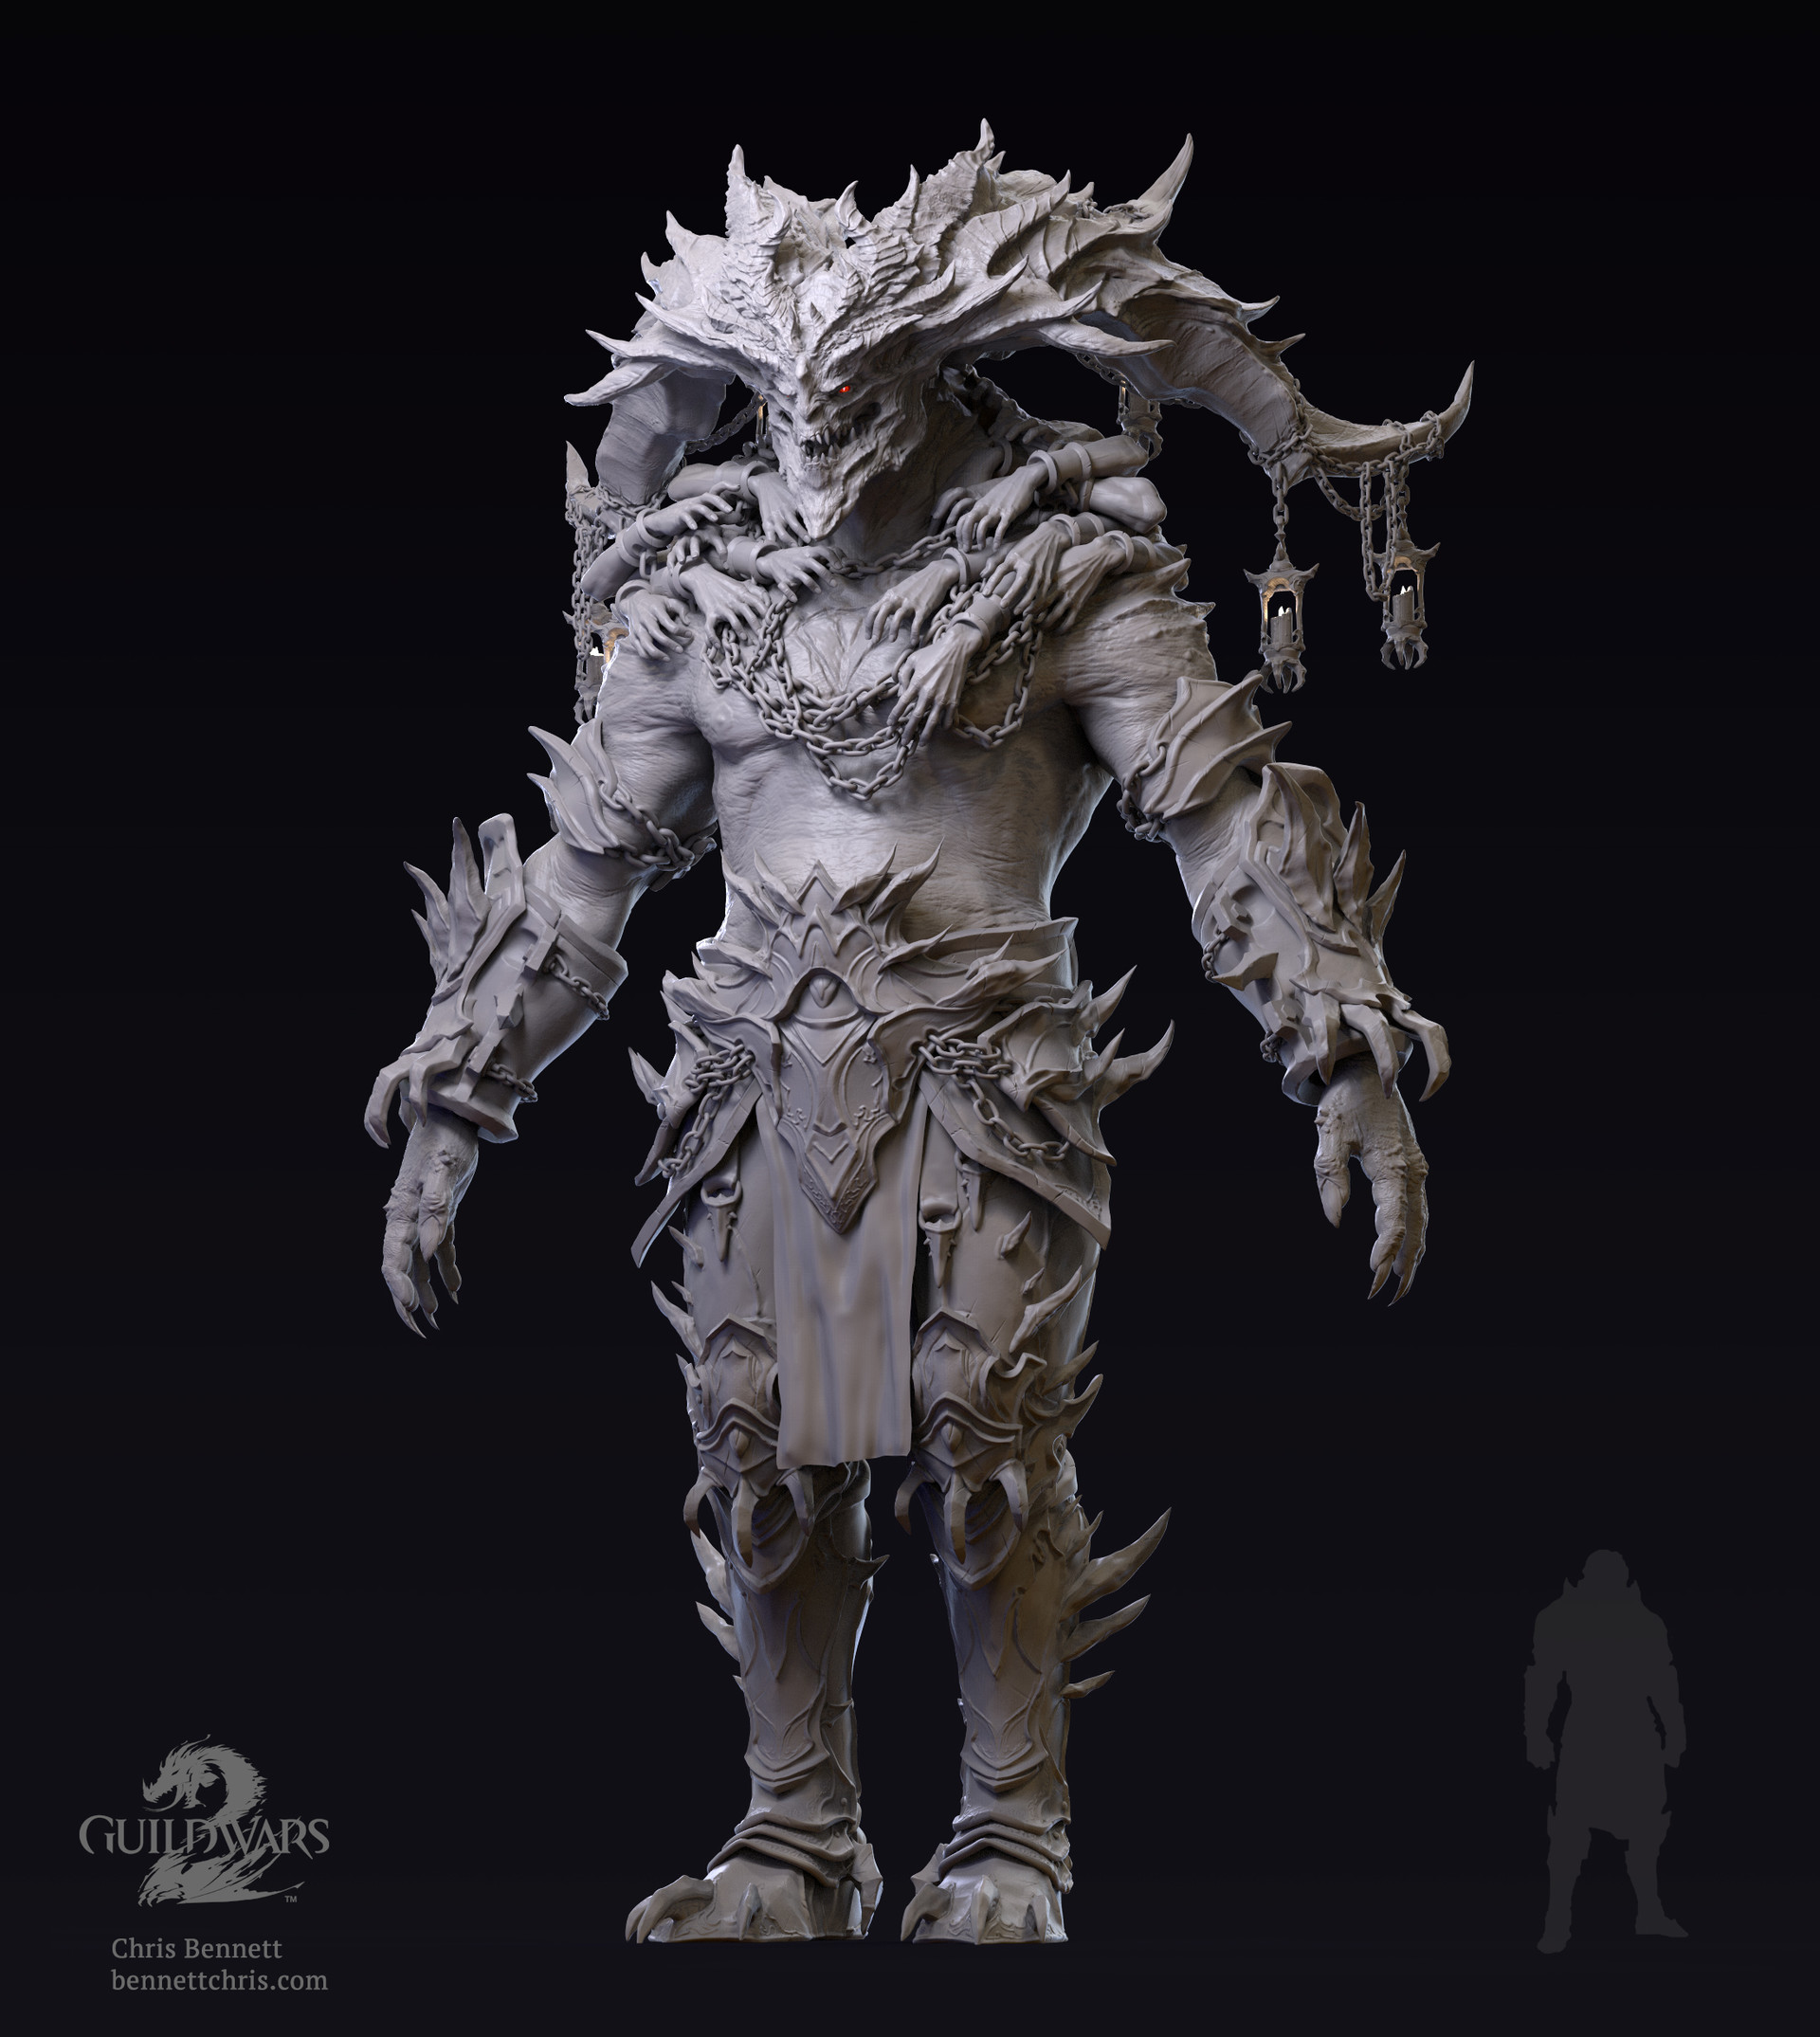 Chris bennett artstationimages saulsdemon keyshot fullfront